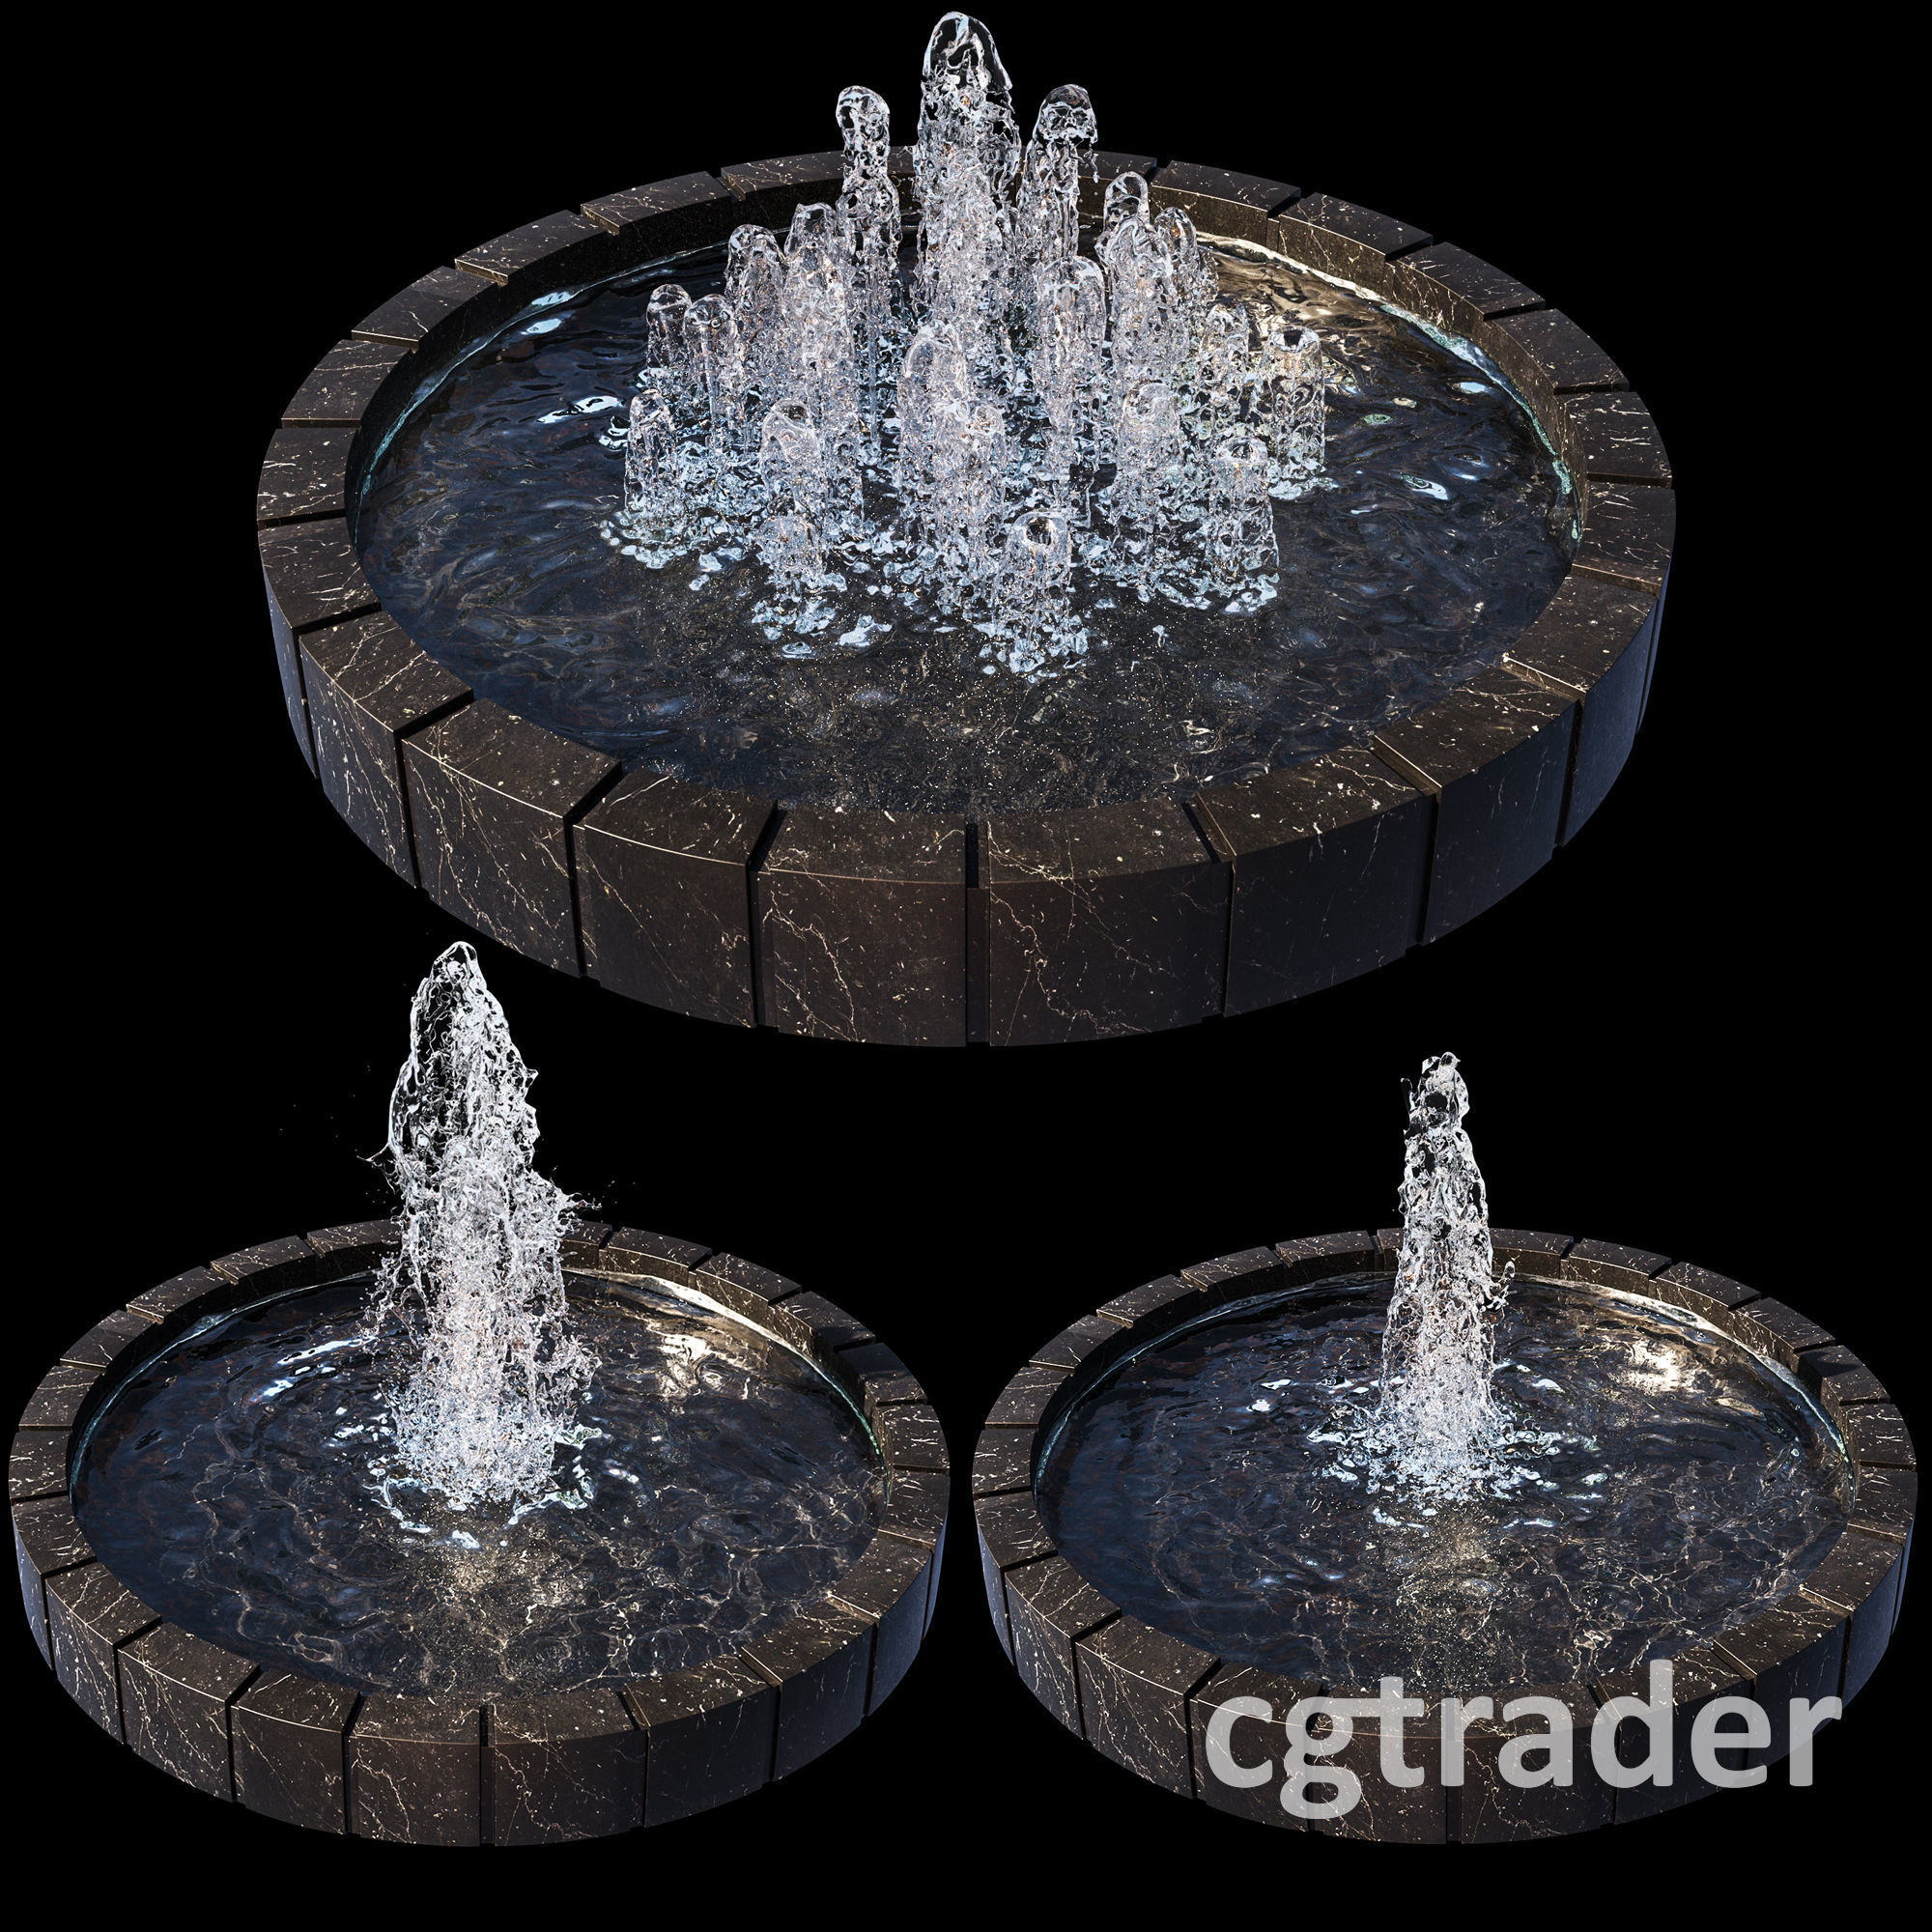 3 large water Fountains